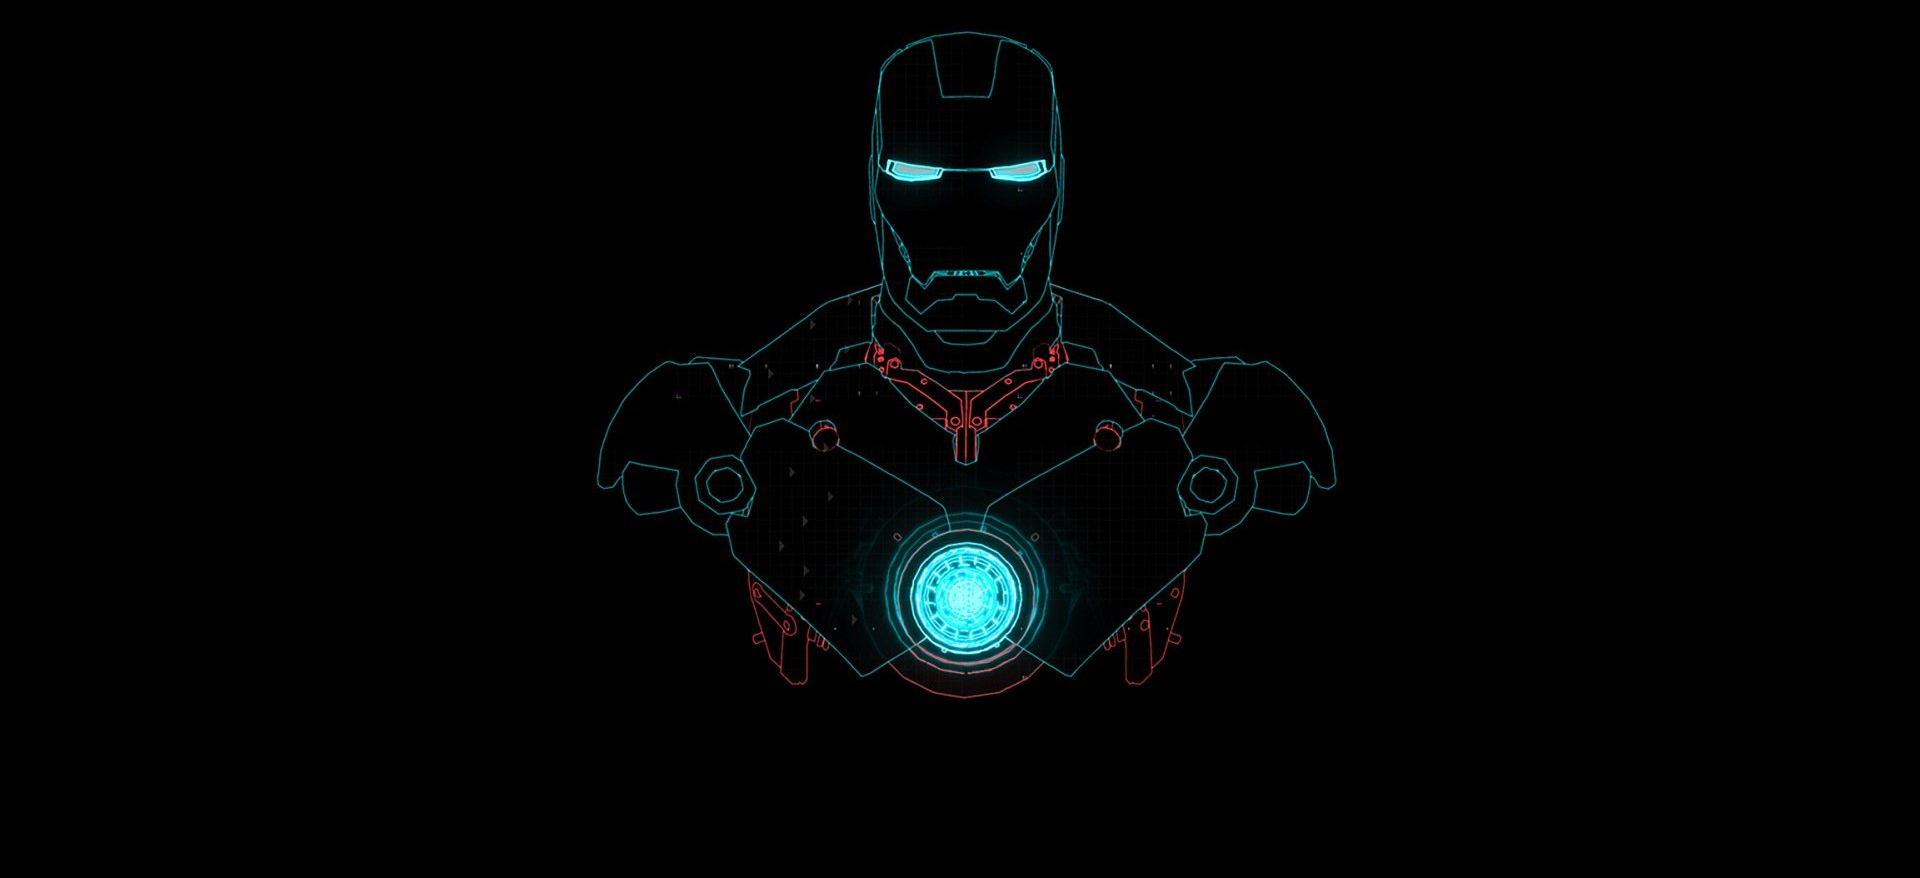 Beautiful Wallpaper Name Yash - ironman___s_h_i_l_d__os_desktop_wallpaper_by_yash1331-d5gdb64  Pictures_23488.png